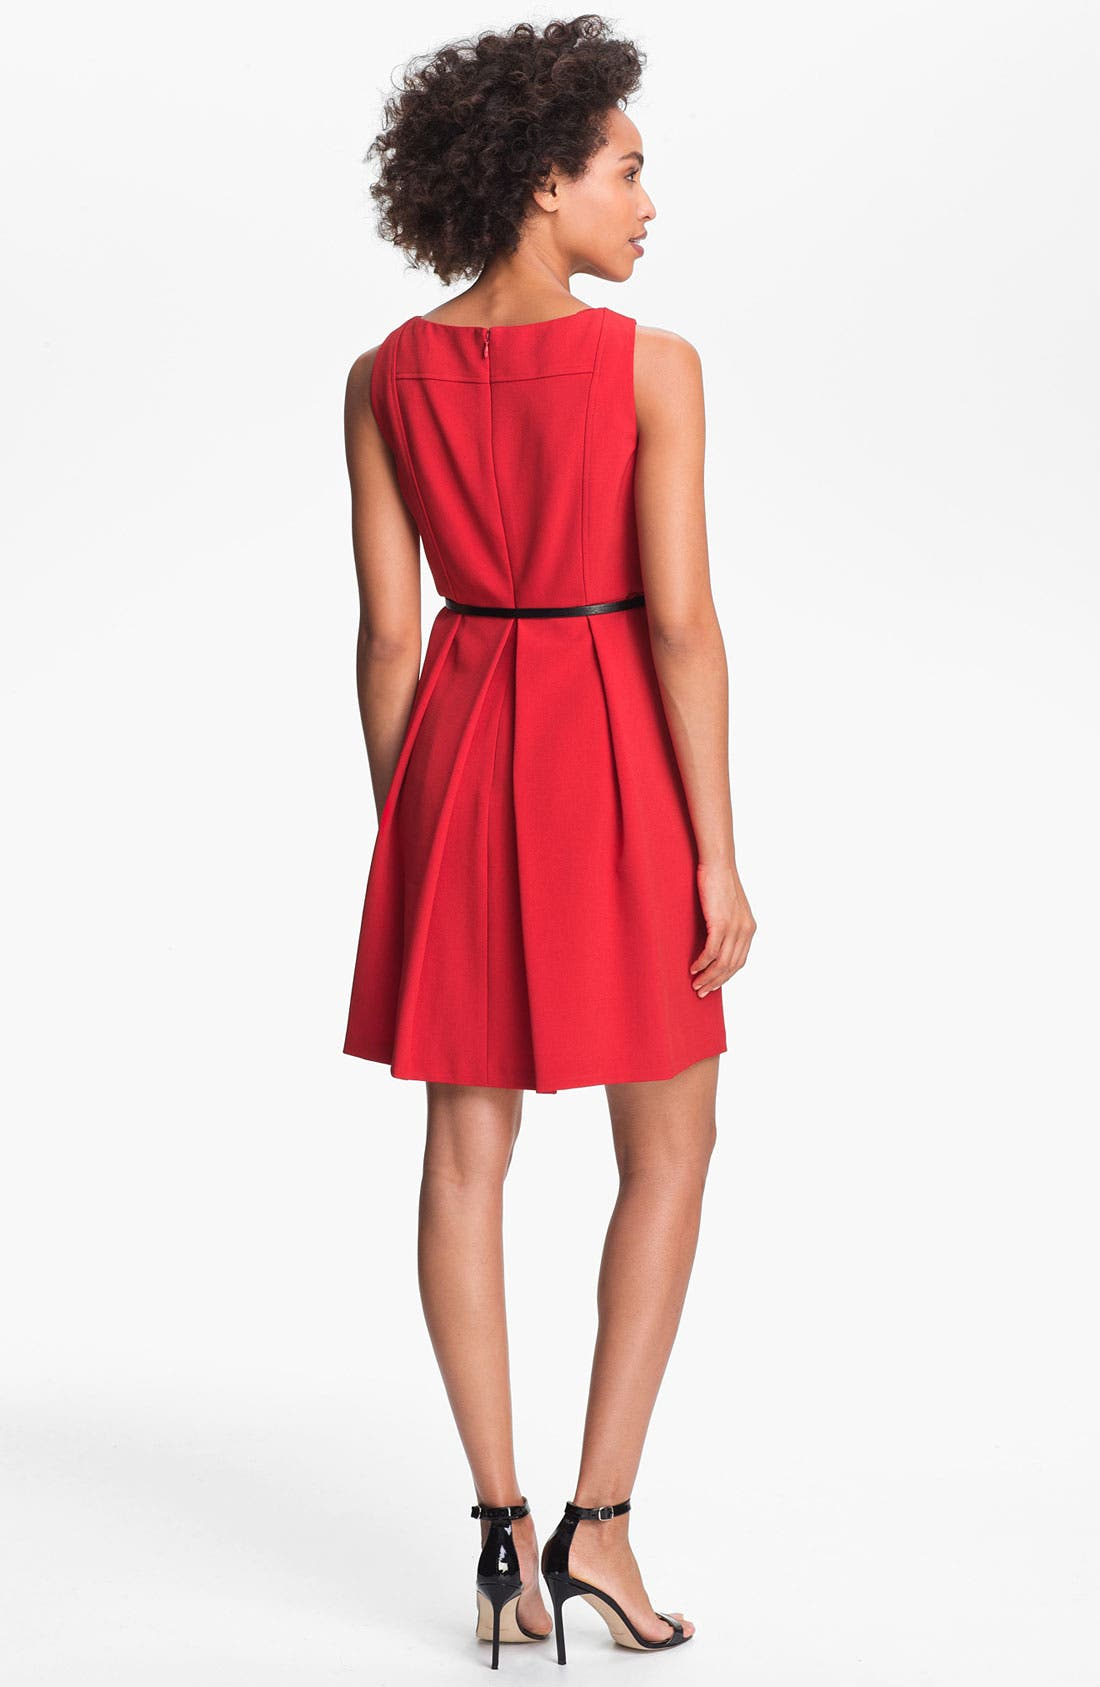 ADRIANNA PAPELL,                             Seamed A-Line Dress,                             Alternate thumbnail 2, color,                             600